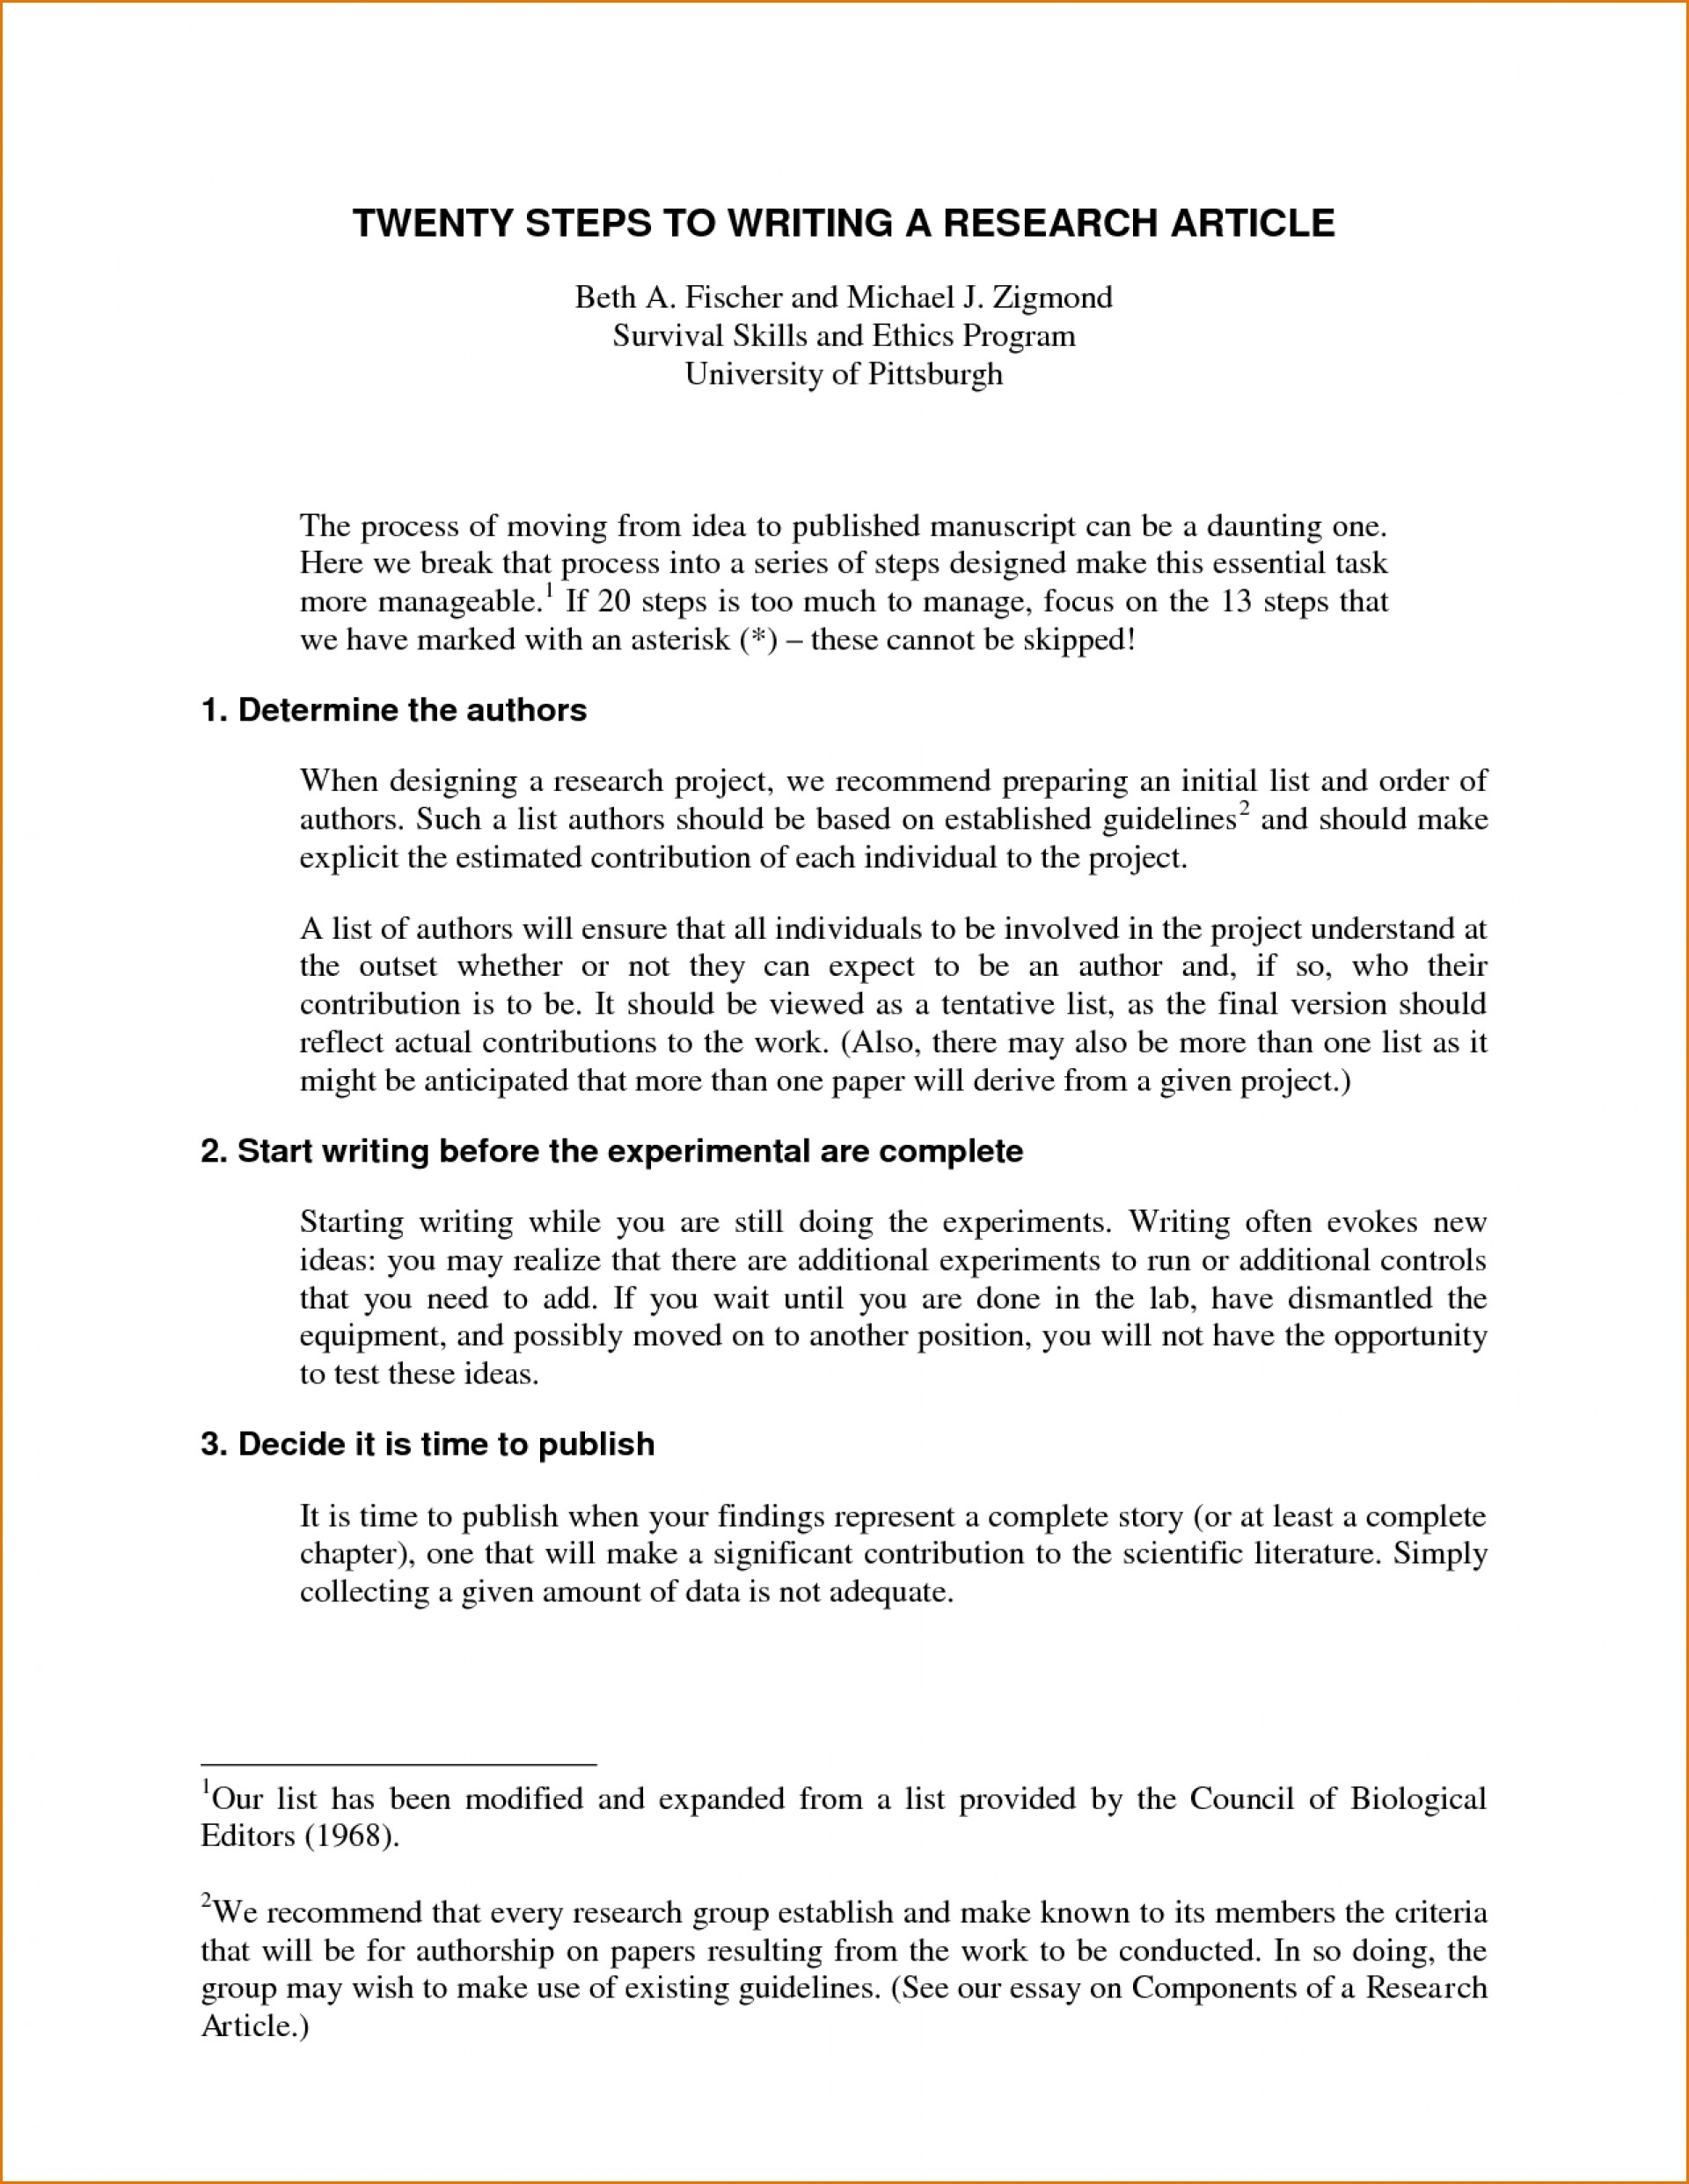 016 Research Paper How To Write Proposal Apa Amazing A 1920